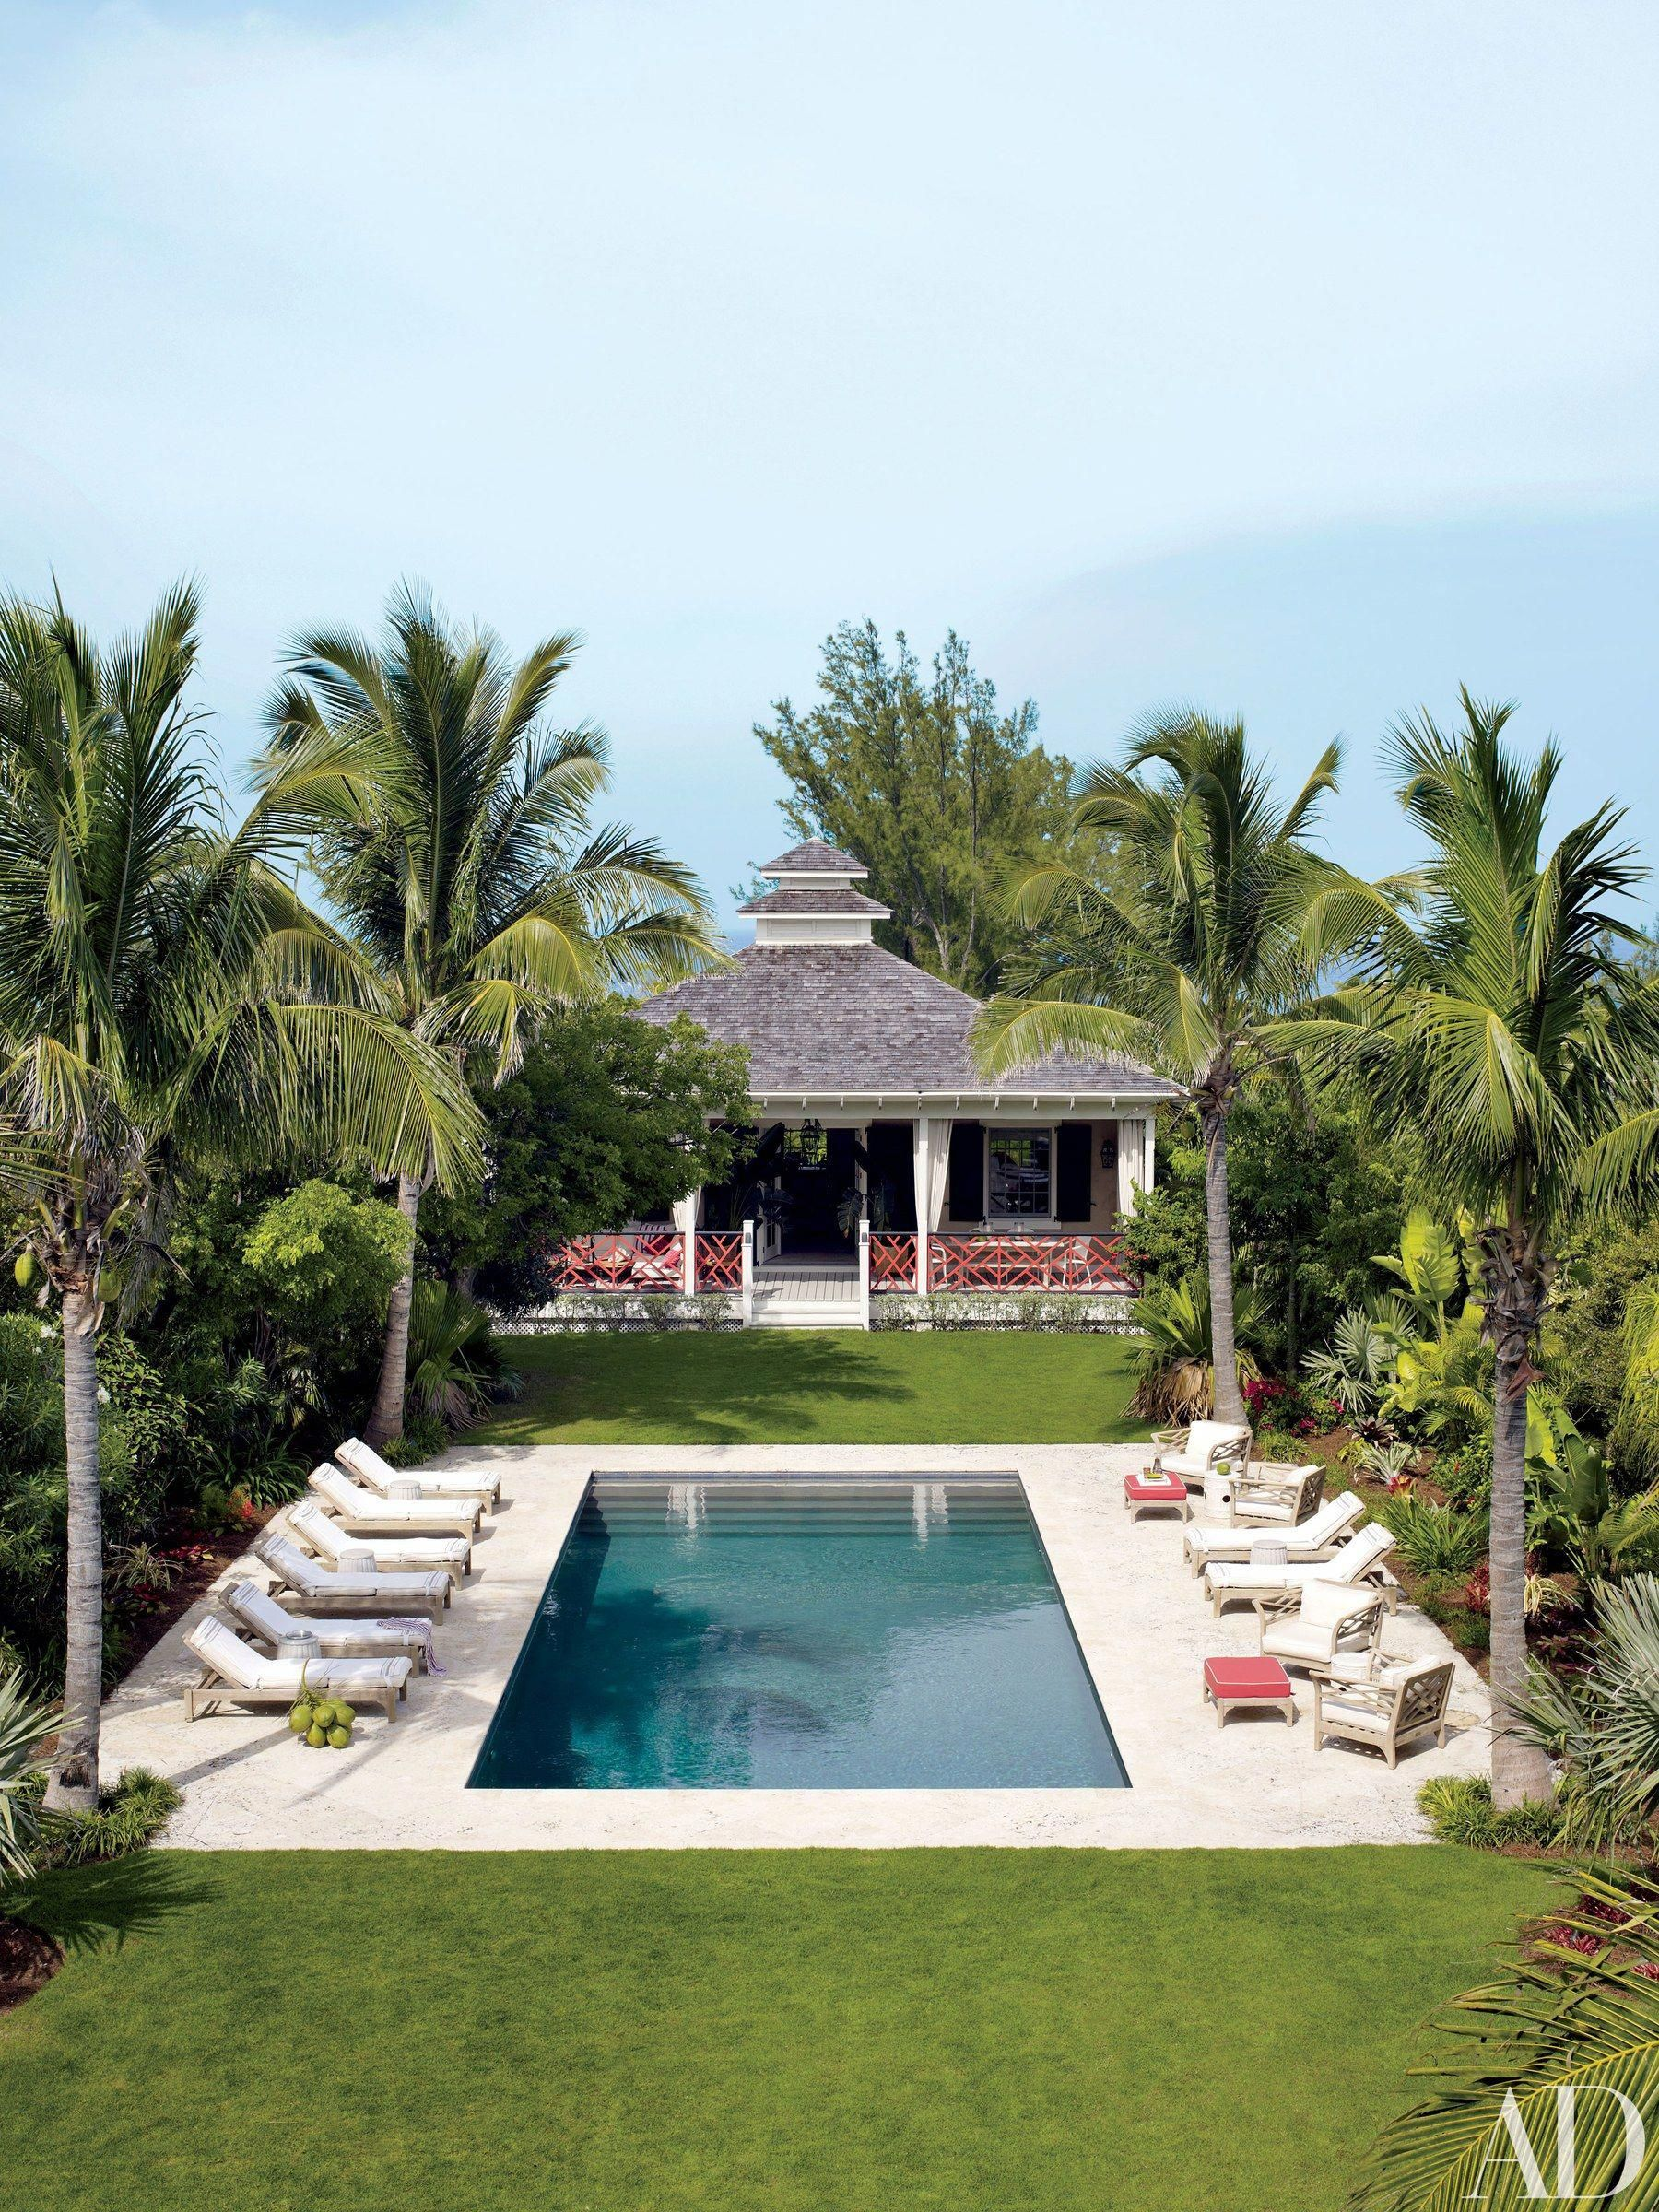 Capture the spirit of your surroundings at the bahamas home of